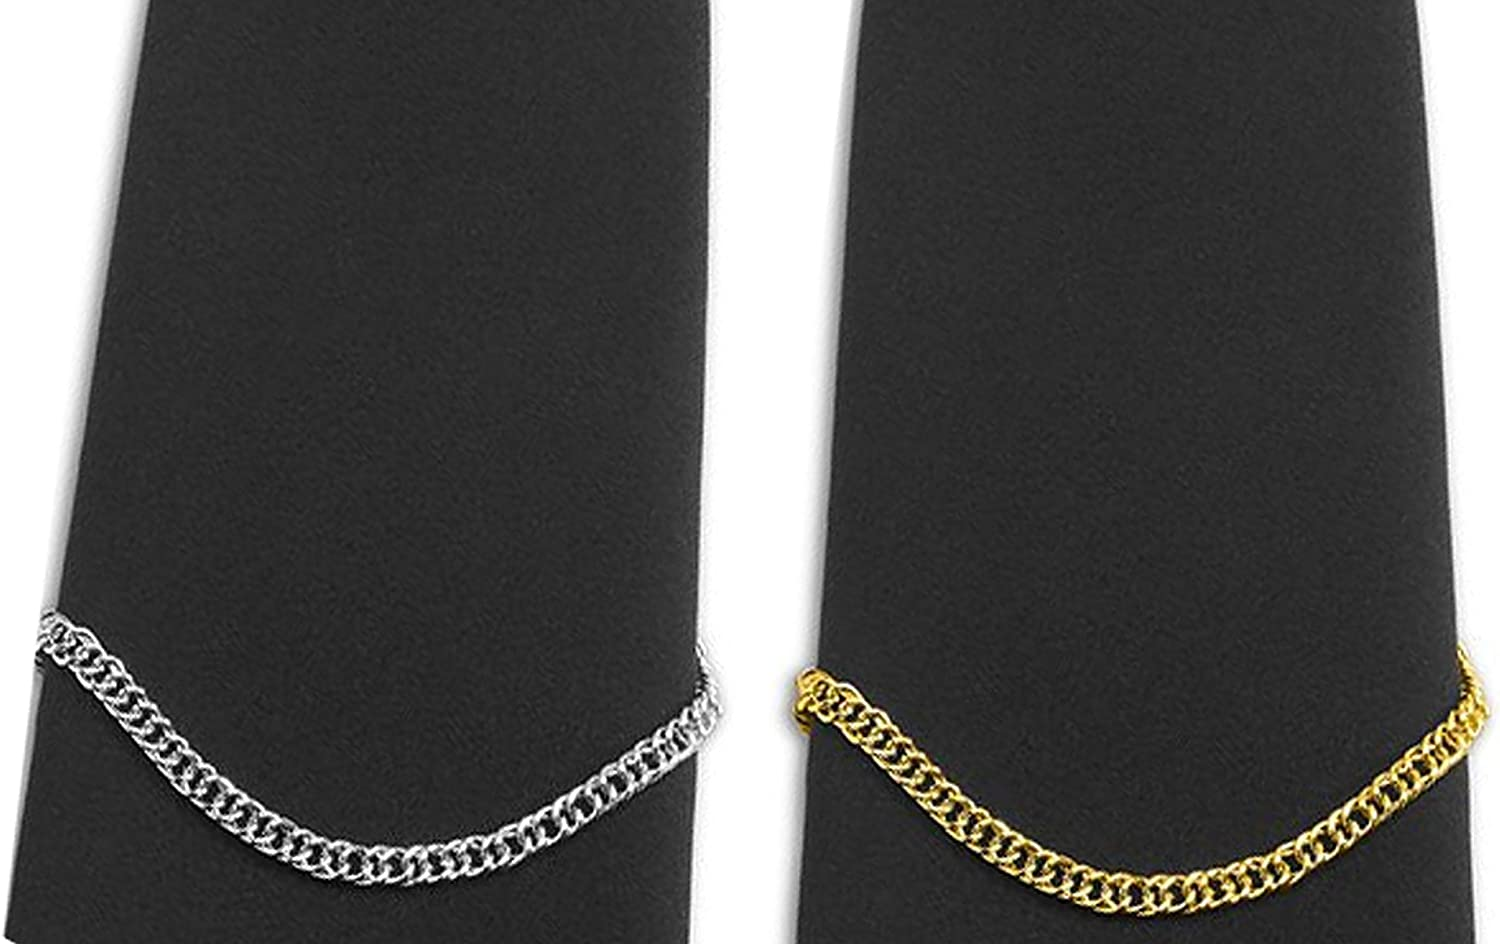 Mens Tie Chain Fashion Necktie Link Noble Necktie Chains for Business Wedding Pack of 3